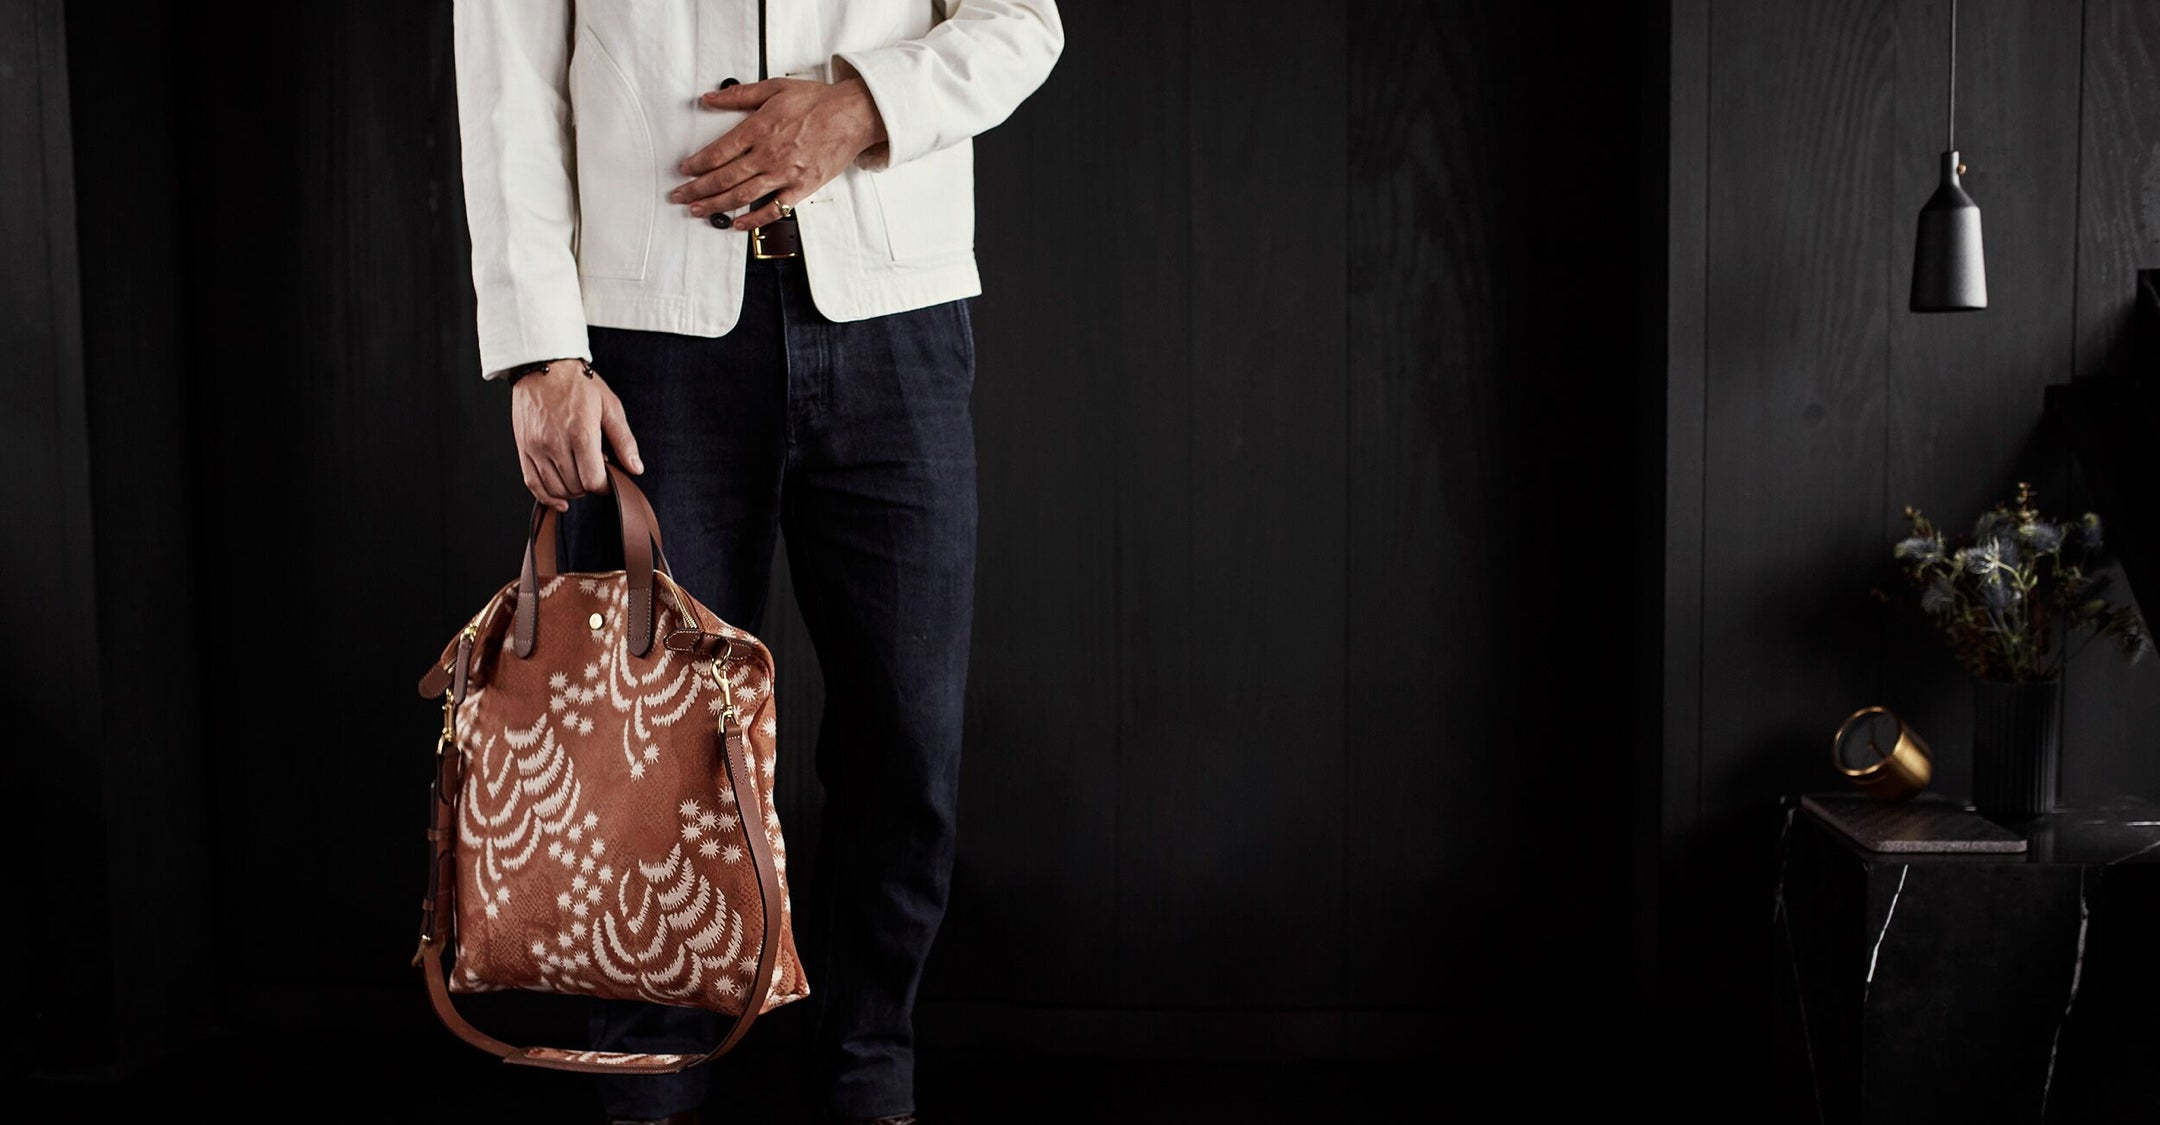 M/S Shopper - Palm Jacquard/Cuoio feature image 3